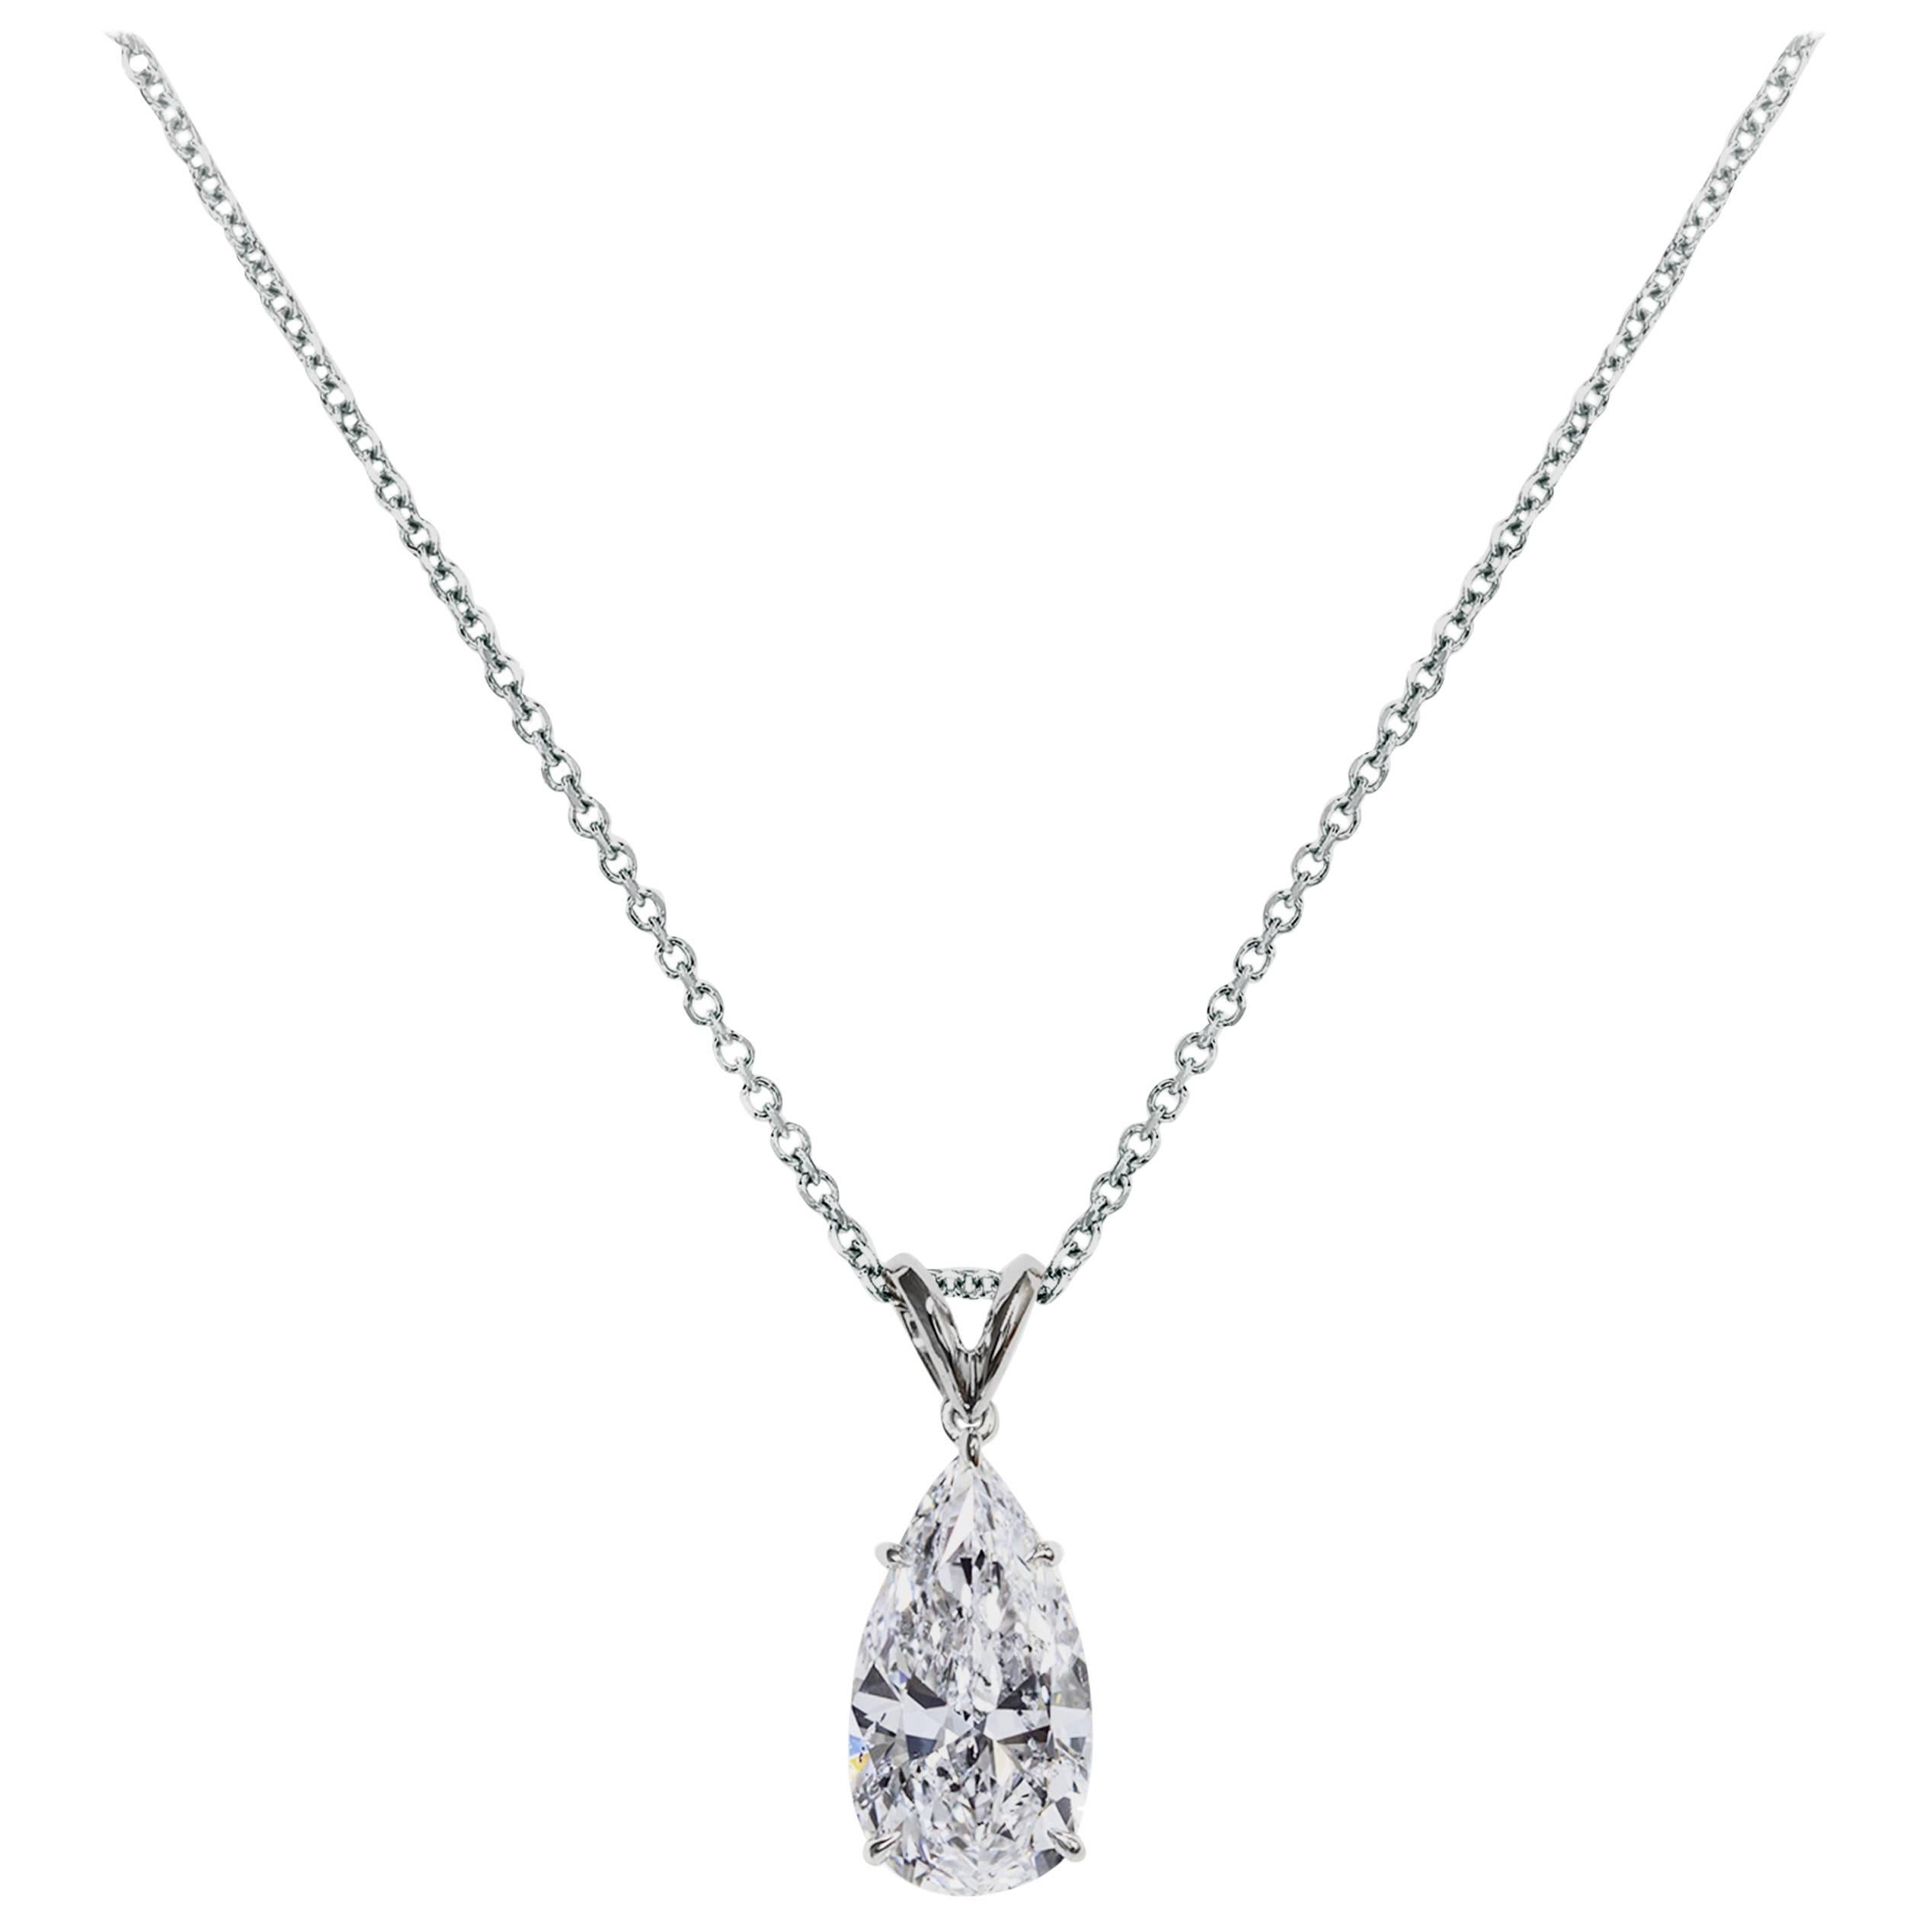 GIA Certified 3.01 Carat Pear Shape Diamond Solitaire Pendant Necklace